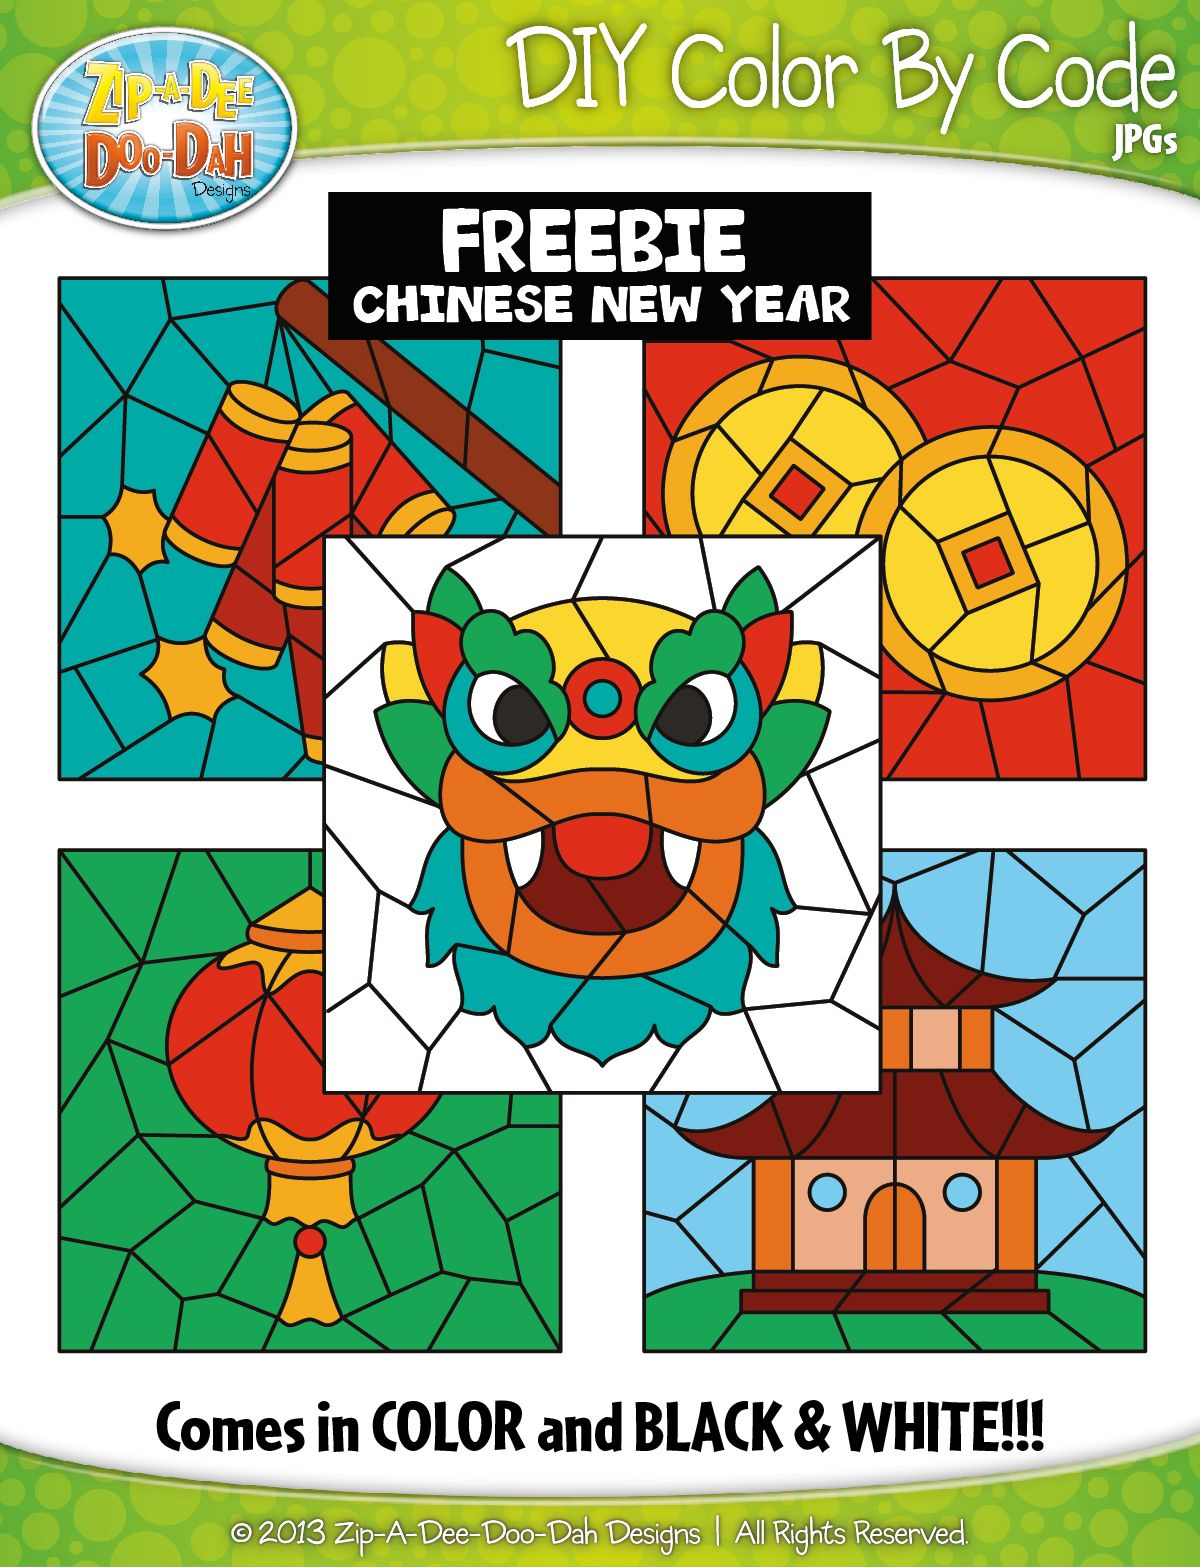 Free Chinese New Year Color By Code Clipart Zip A Dee Doo